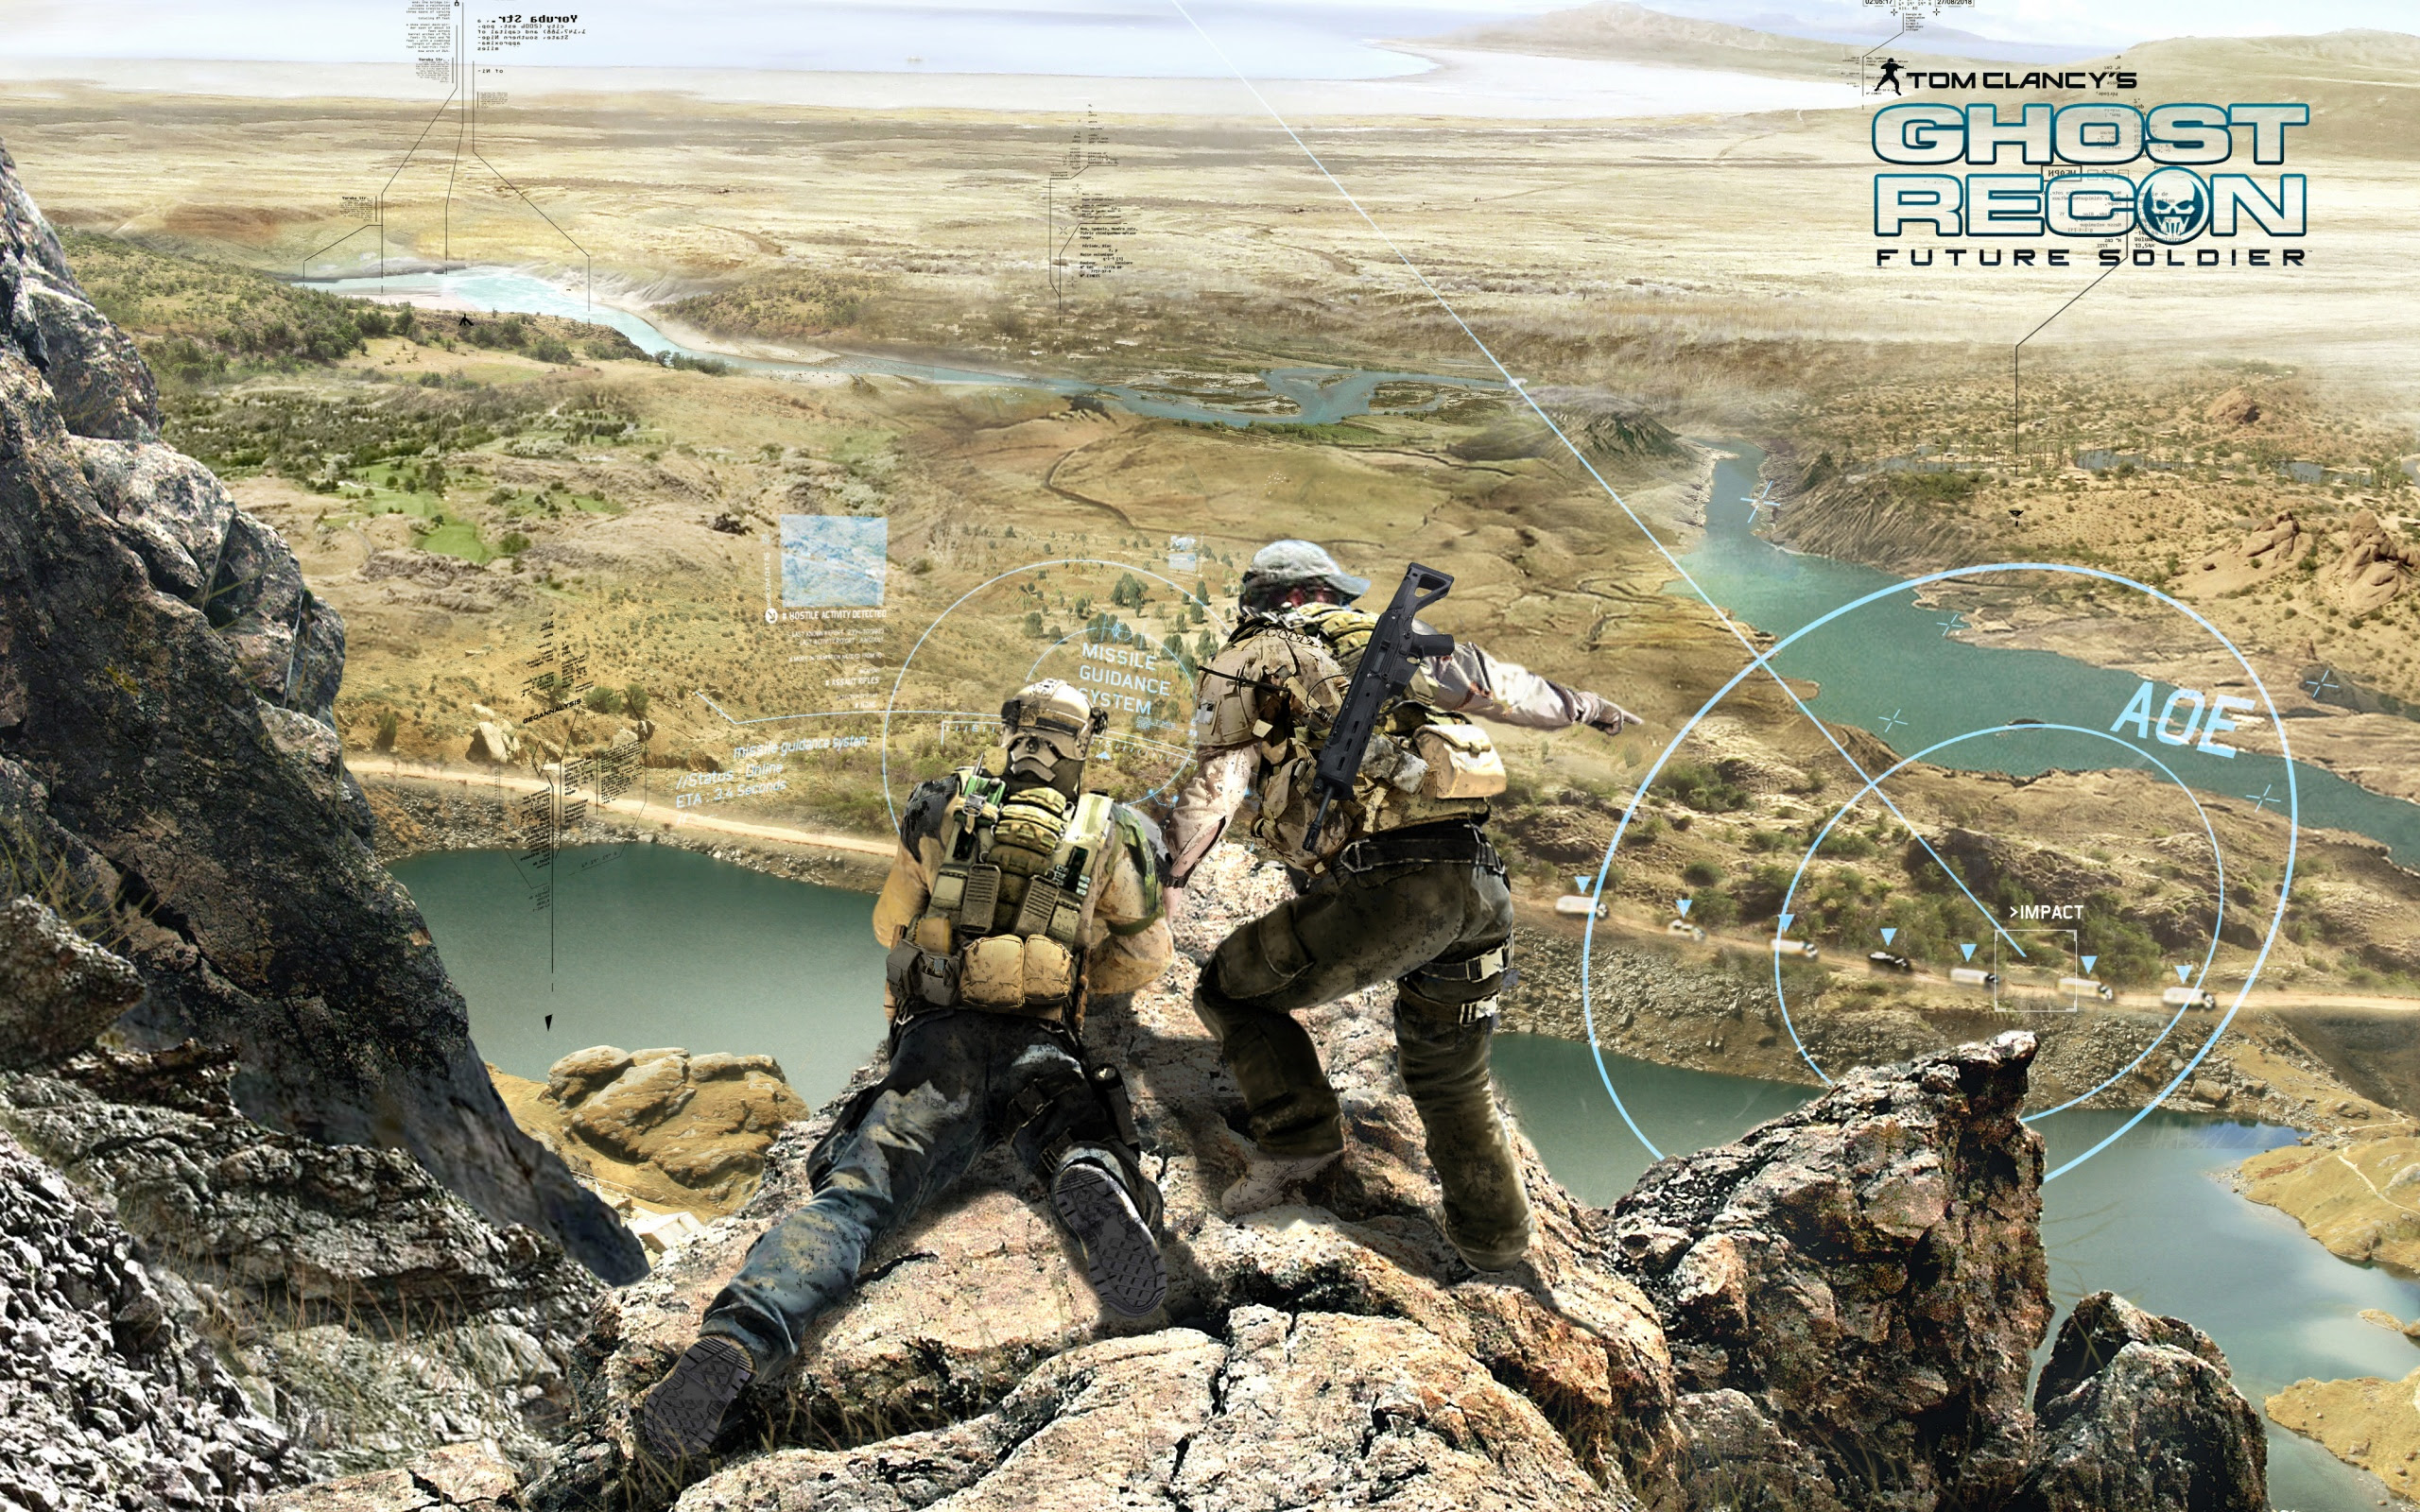 2012 Ghost Recon Future Soldier Game Wallpapers In Jpg Format For